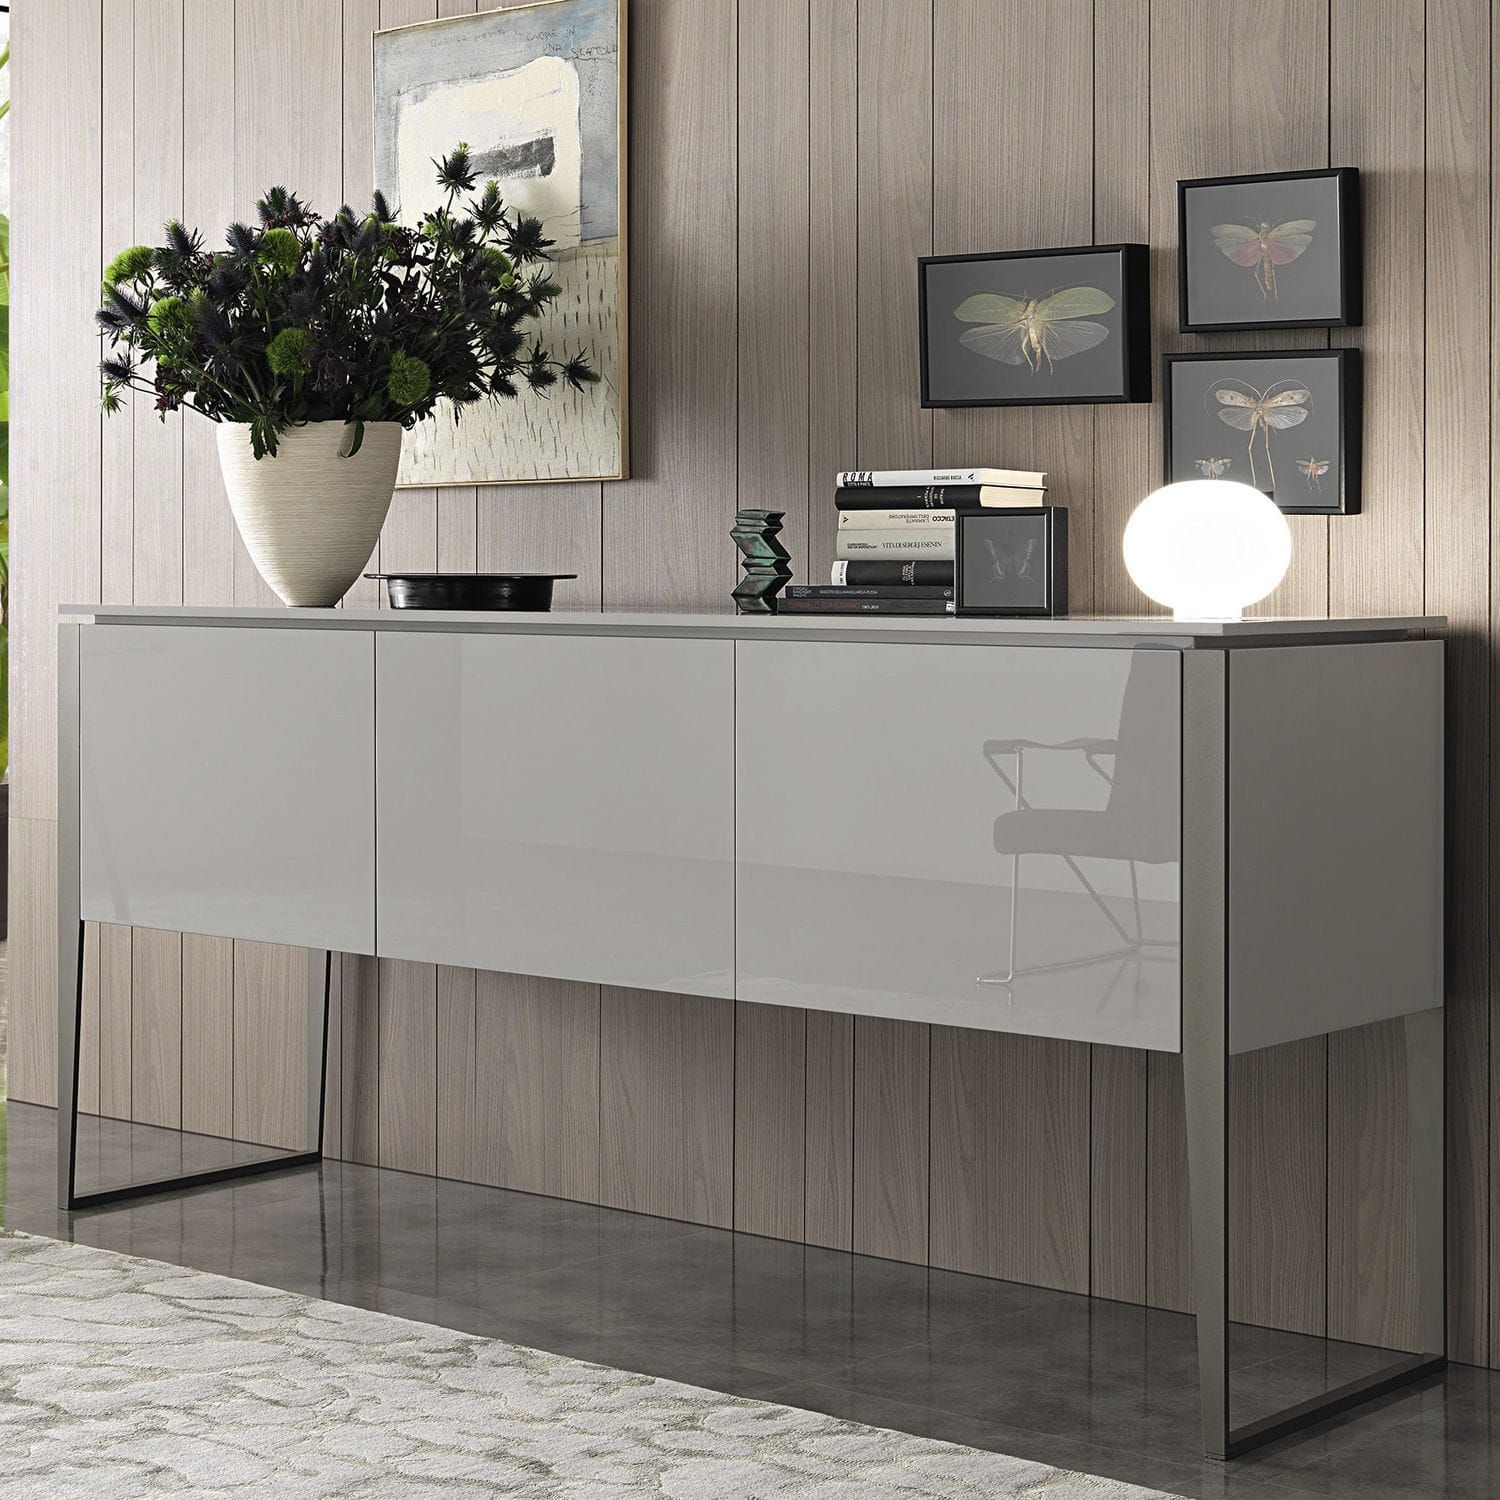 Hochbeinig Sideboard Modern Holz Lackiertes Holz Nibbio By  # Muebles Lema Rosario